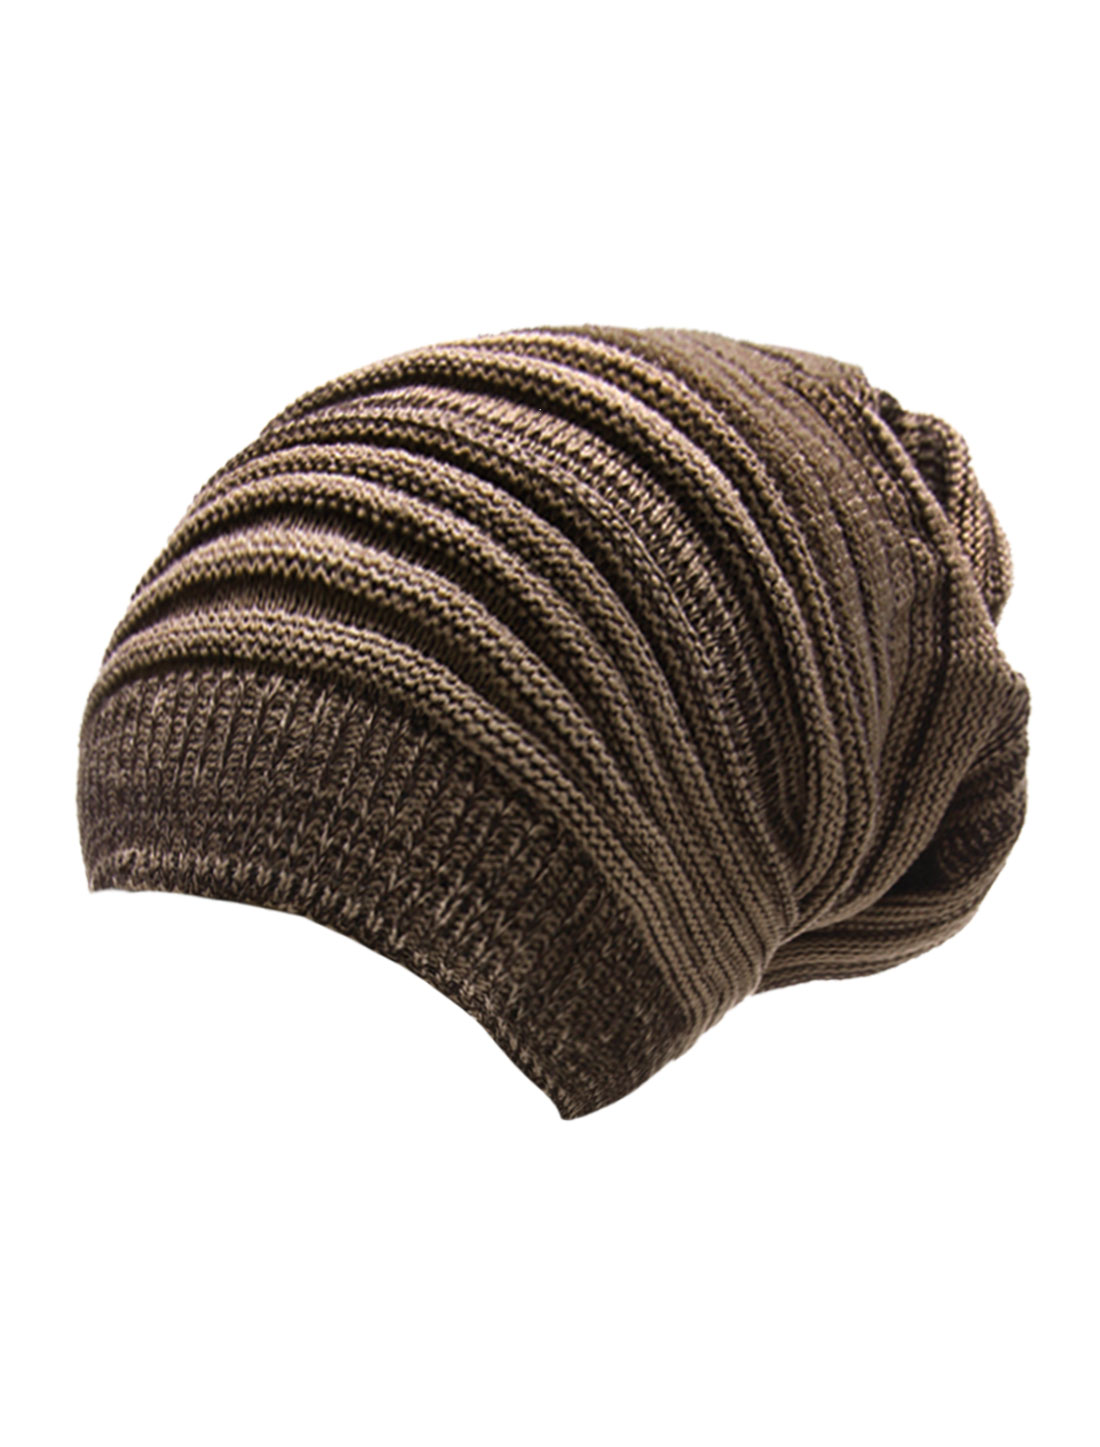 Men Coffee Dark Khaki Knit Thick Warmer Ribbing Cuff Beanie Hat